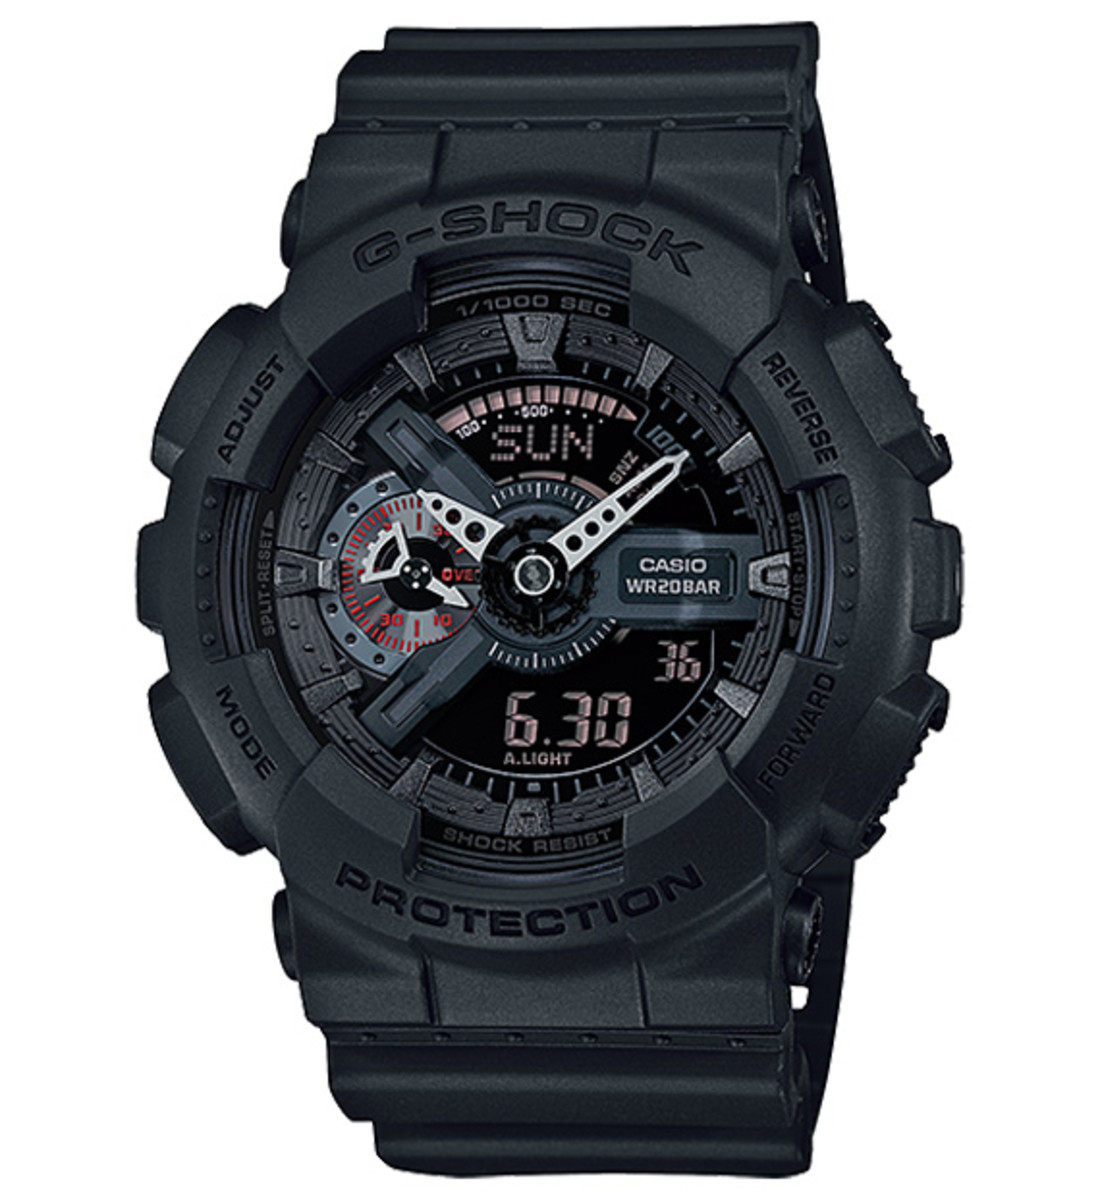 Casio G-Shock GA-110MB-1AJF